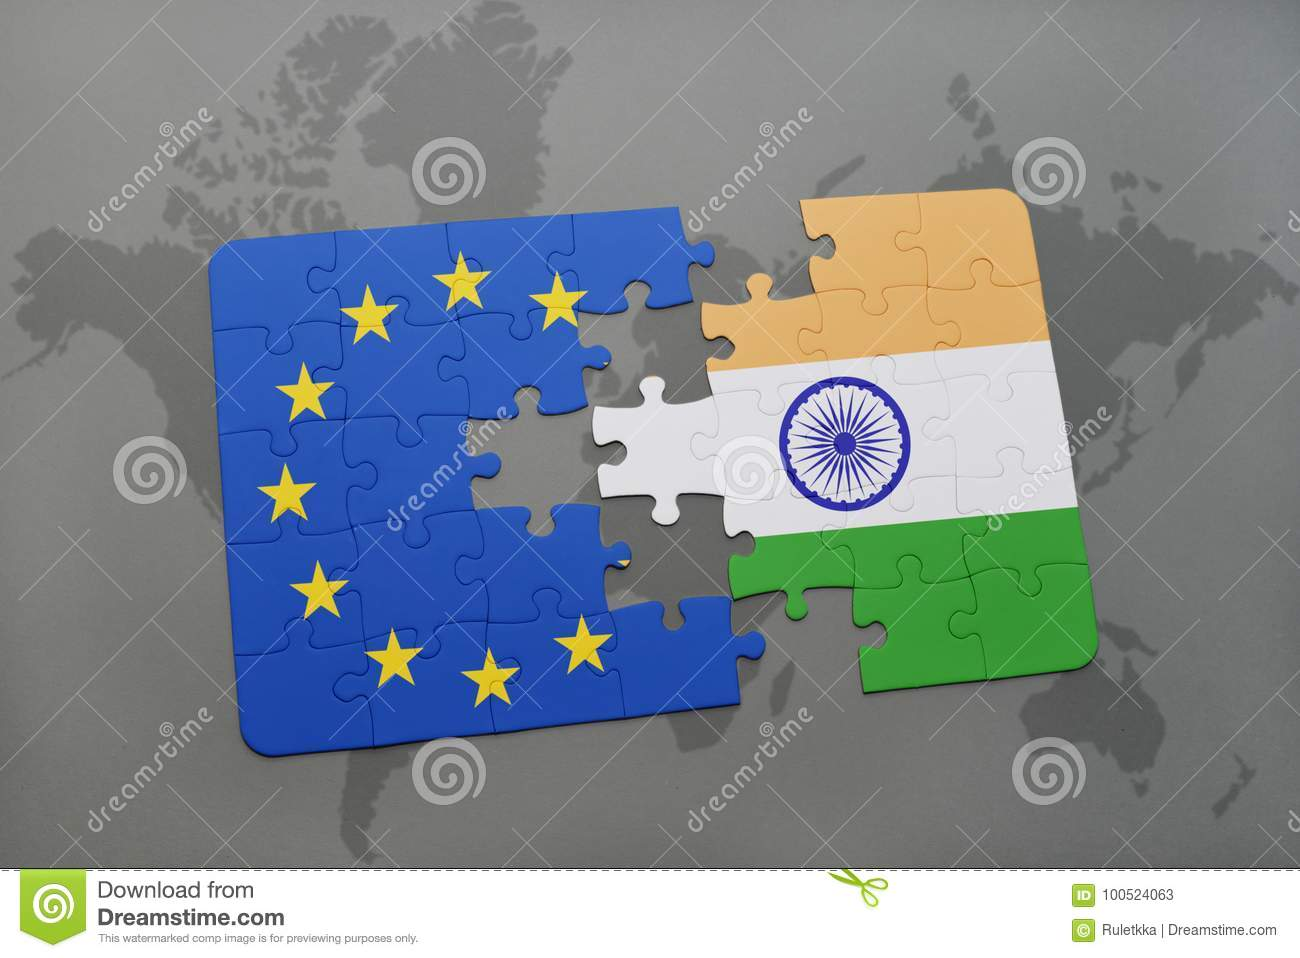 Puzzle With The National Flag Of India And European Union On A World ...